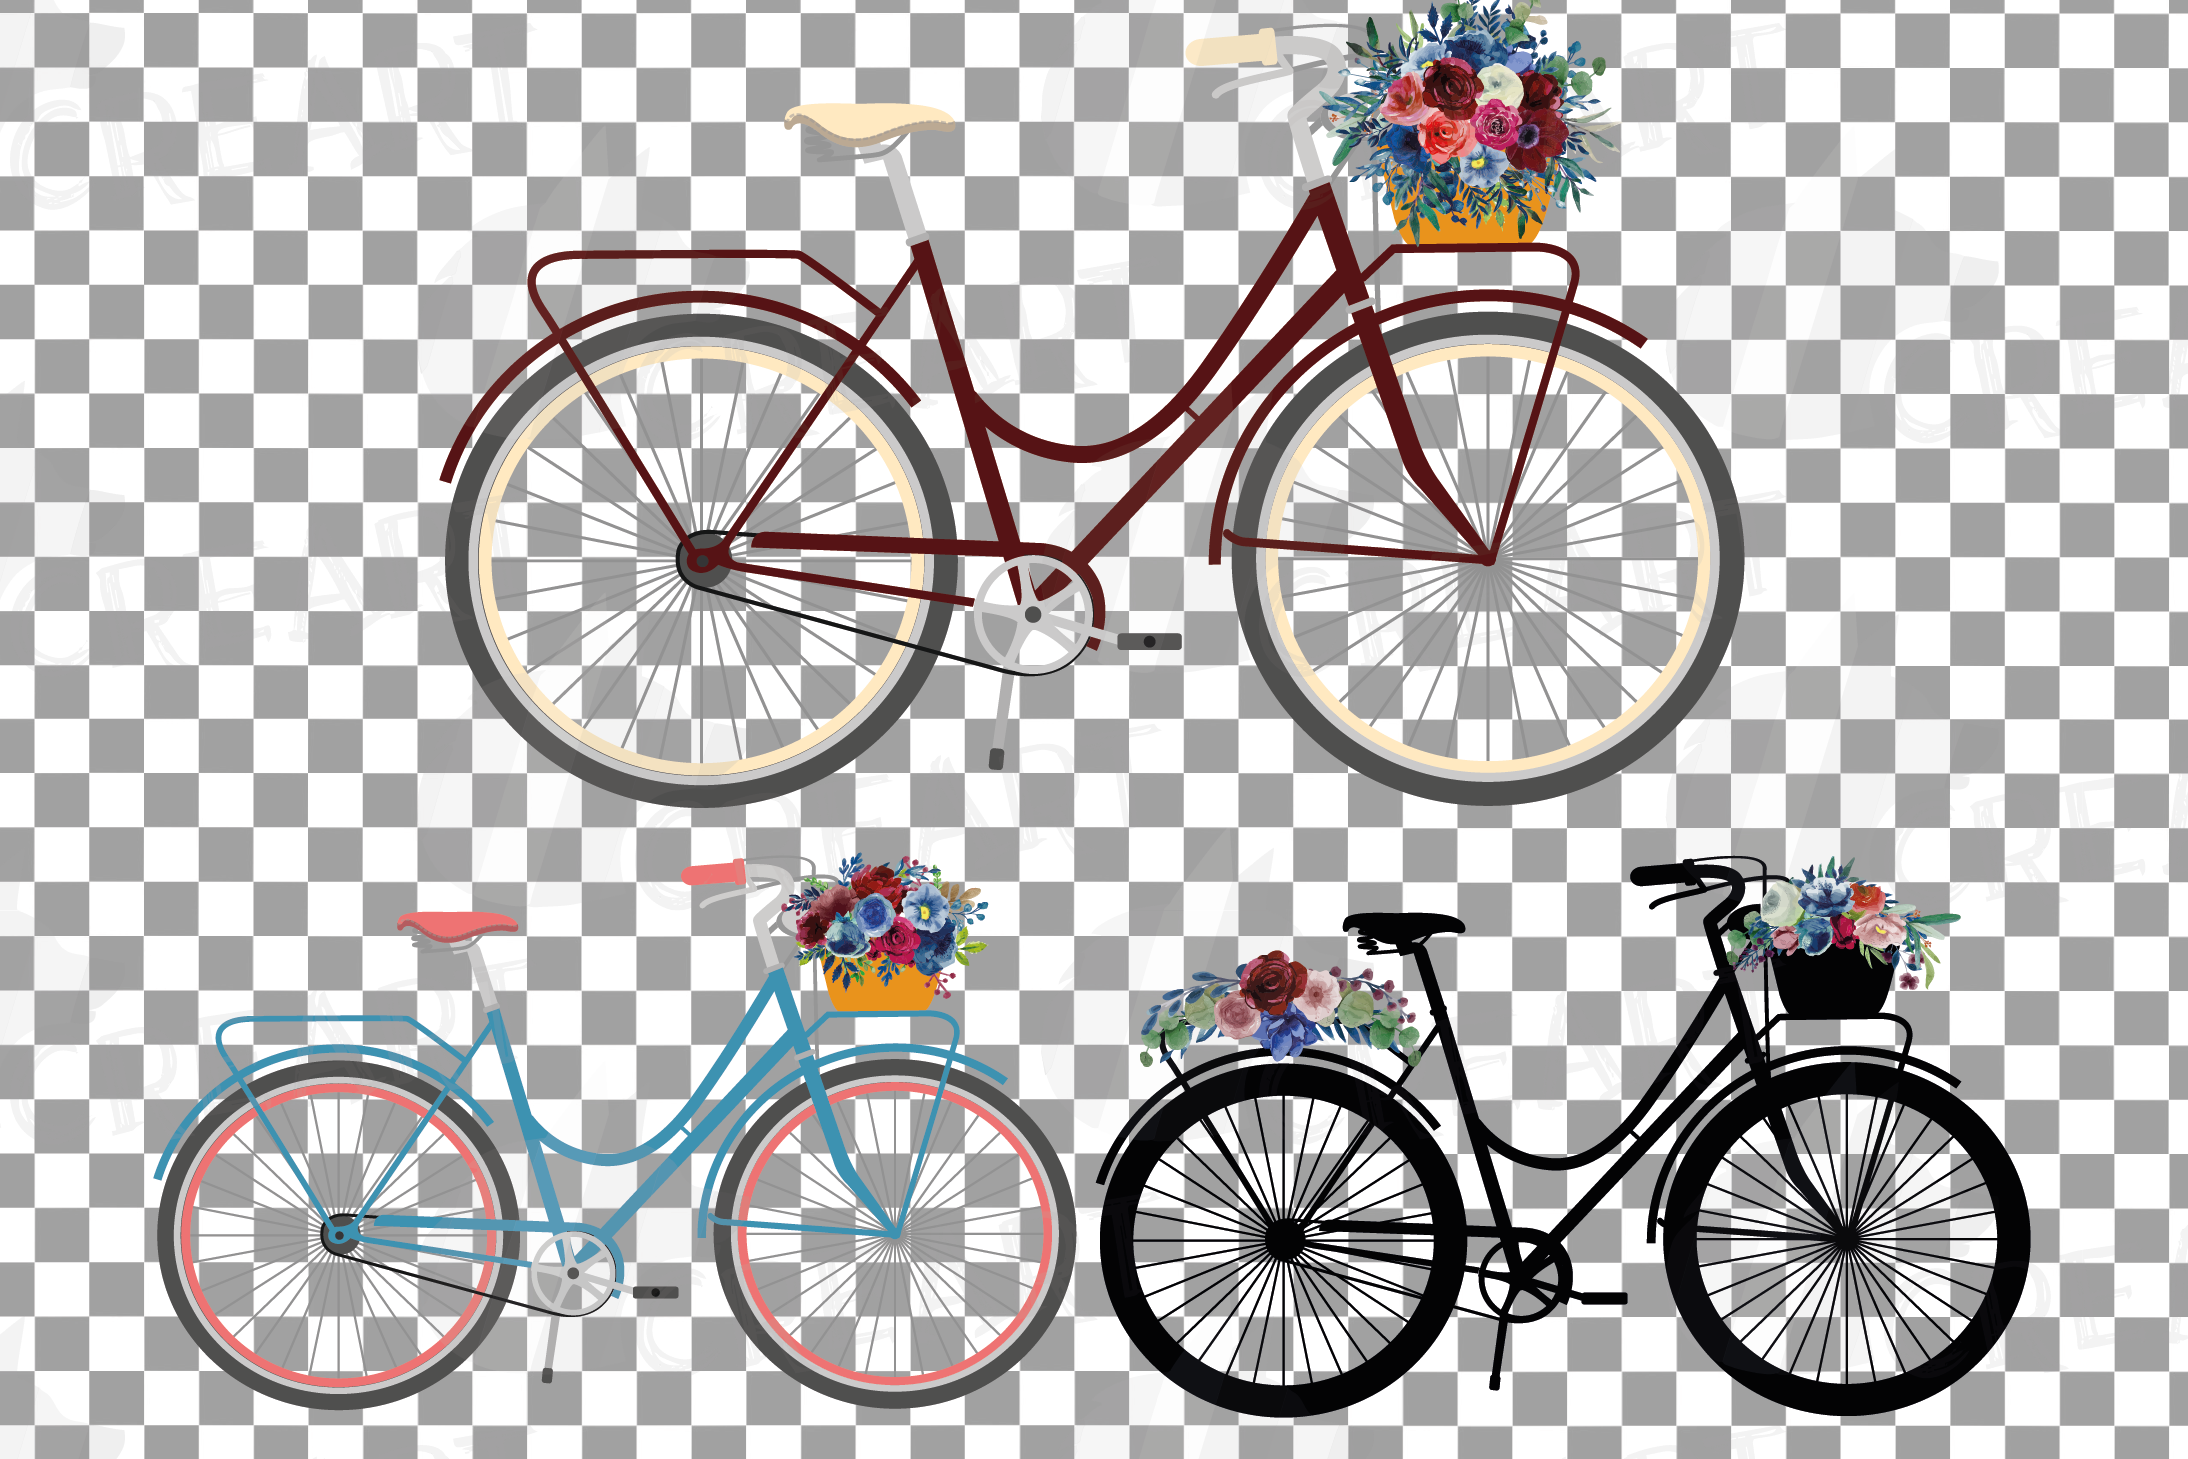 Floral bicycles with watercolor bouquets decoration clip art example image 2